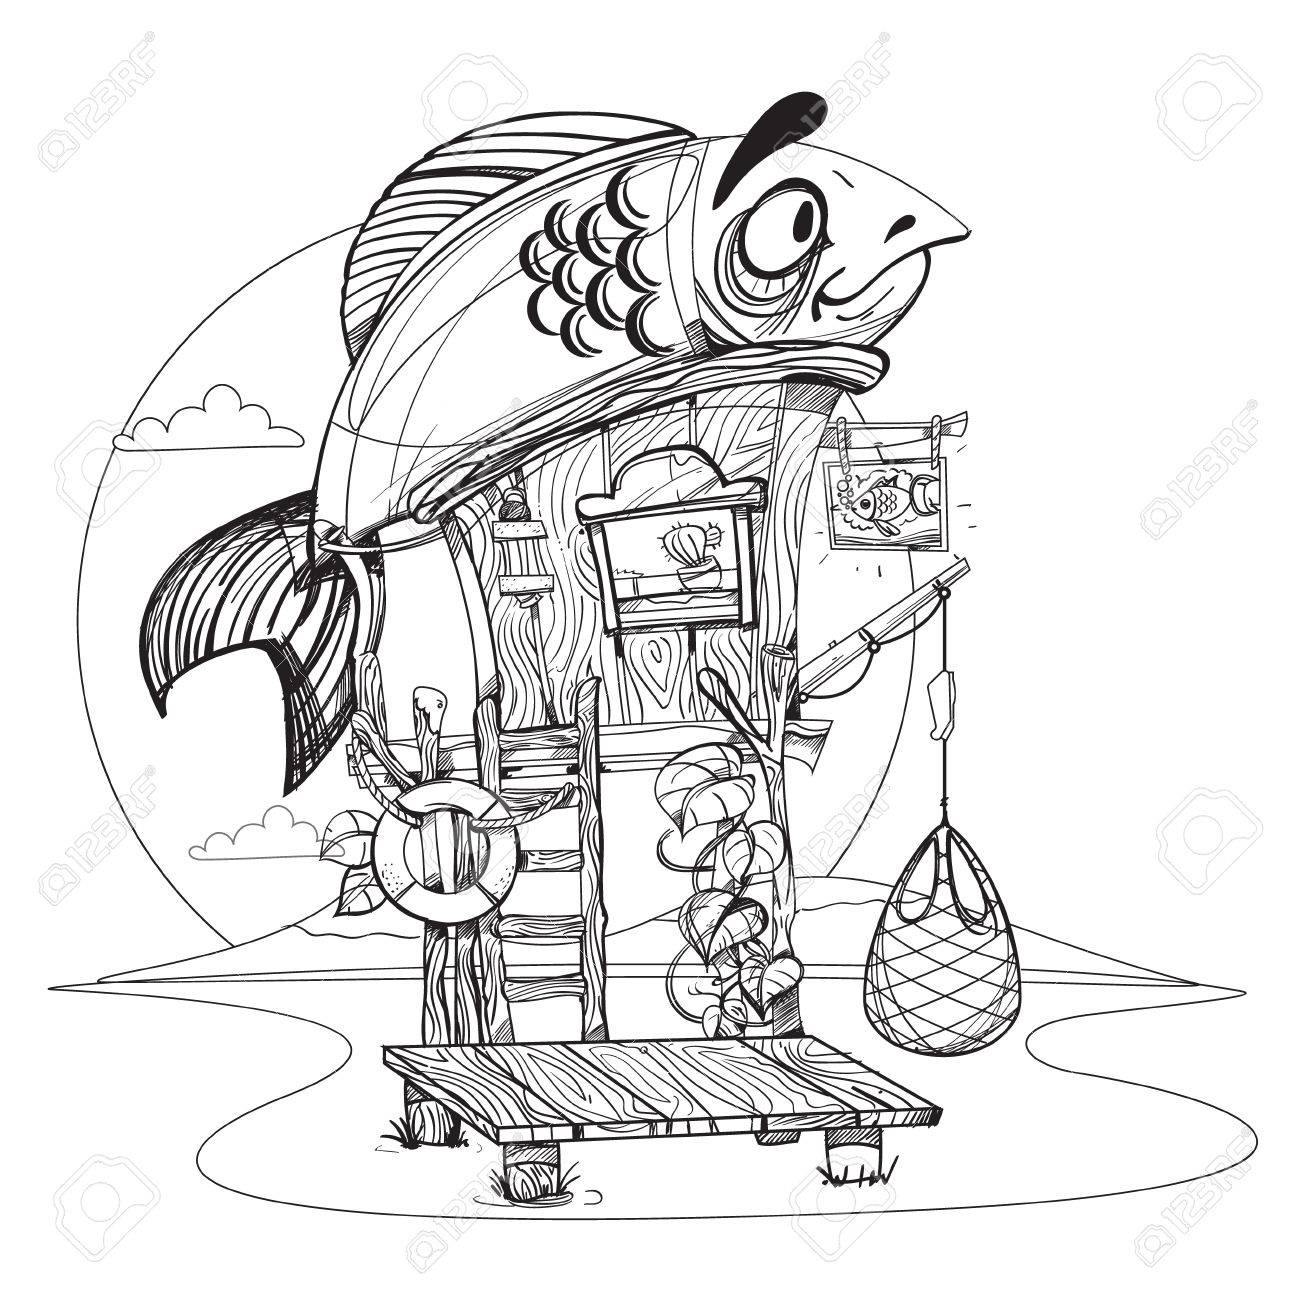 1300x1300 House Fisherman. Cartoon Illustration Of A Wooden Hut On Stilts